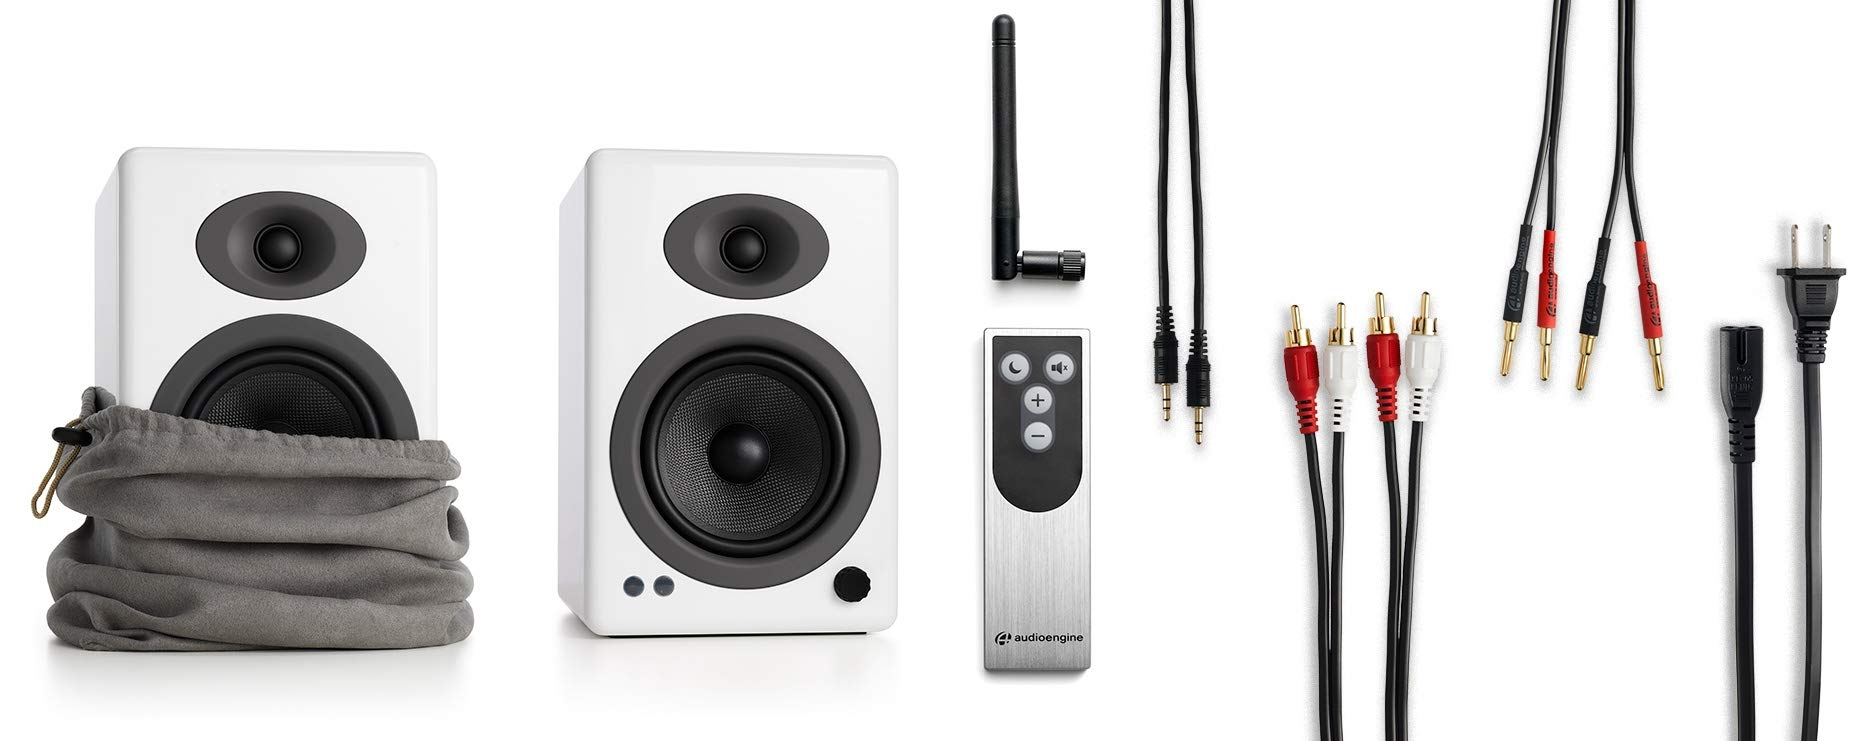 Audioengine A5+ 150W Wireless Powered Bookshelf Speakers   Built-in Analog Amplifier   aptX HD Bluetooth 24 Bit DAC, RCA and 3.5mm inputs   Solid Aluminium Remote Control   Cables Included by Audioengine (Image #3)